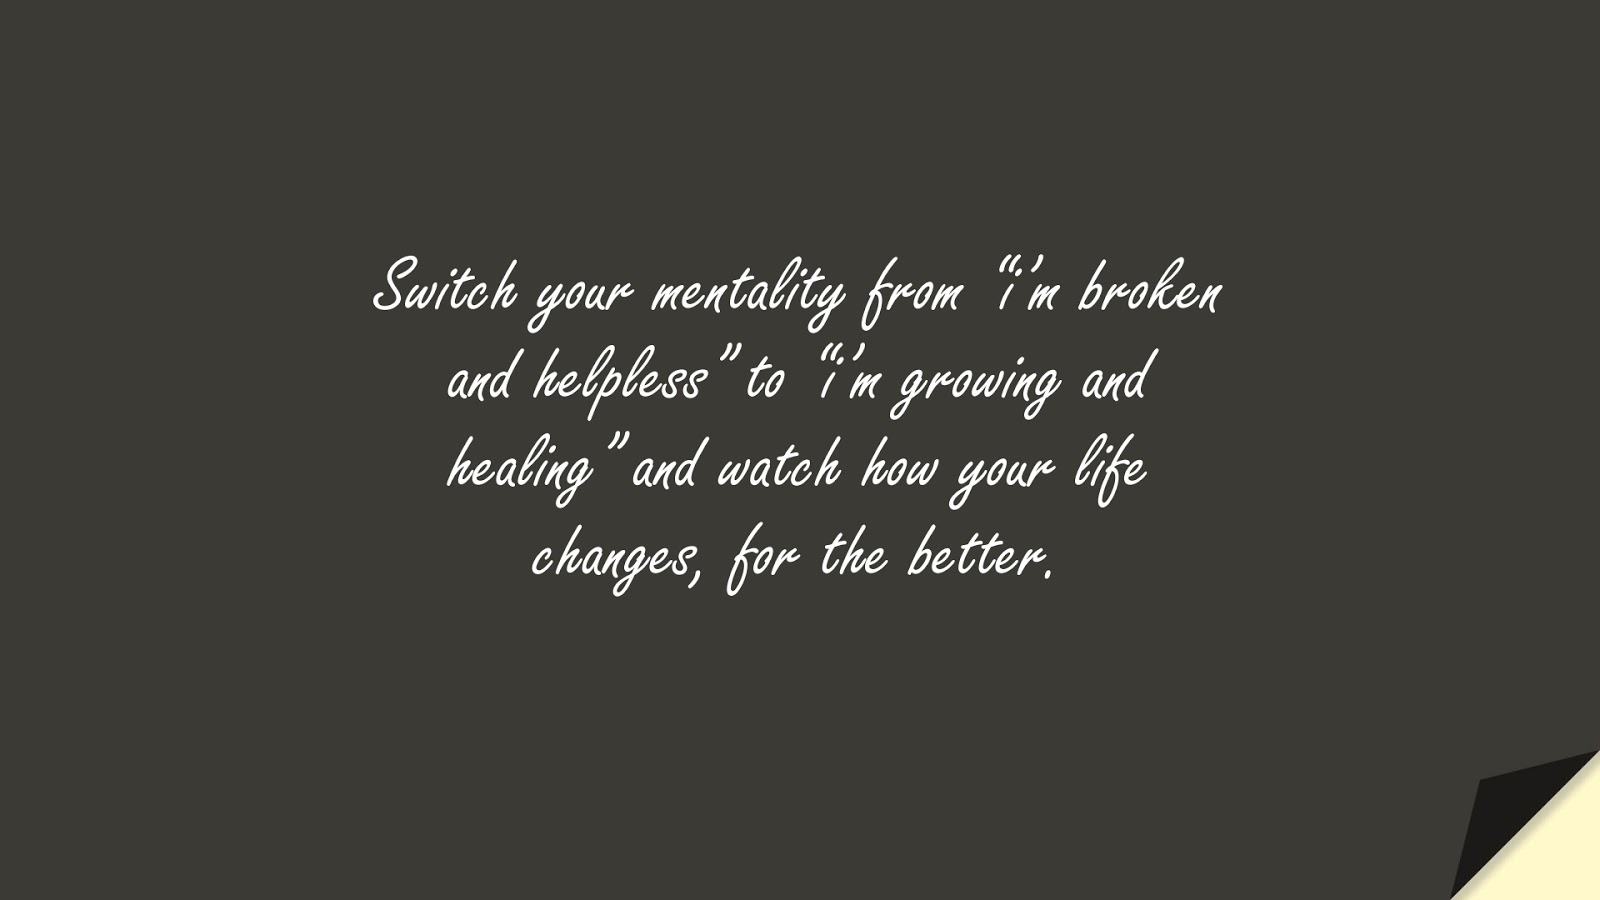 """Switch your mentality from """"i'm broken and helpless"""" to """"i'm growing and healing"""" and watch how your life changes, for the better.FALSE"""